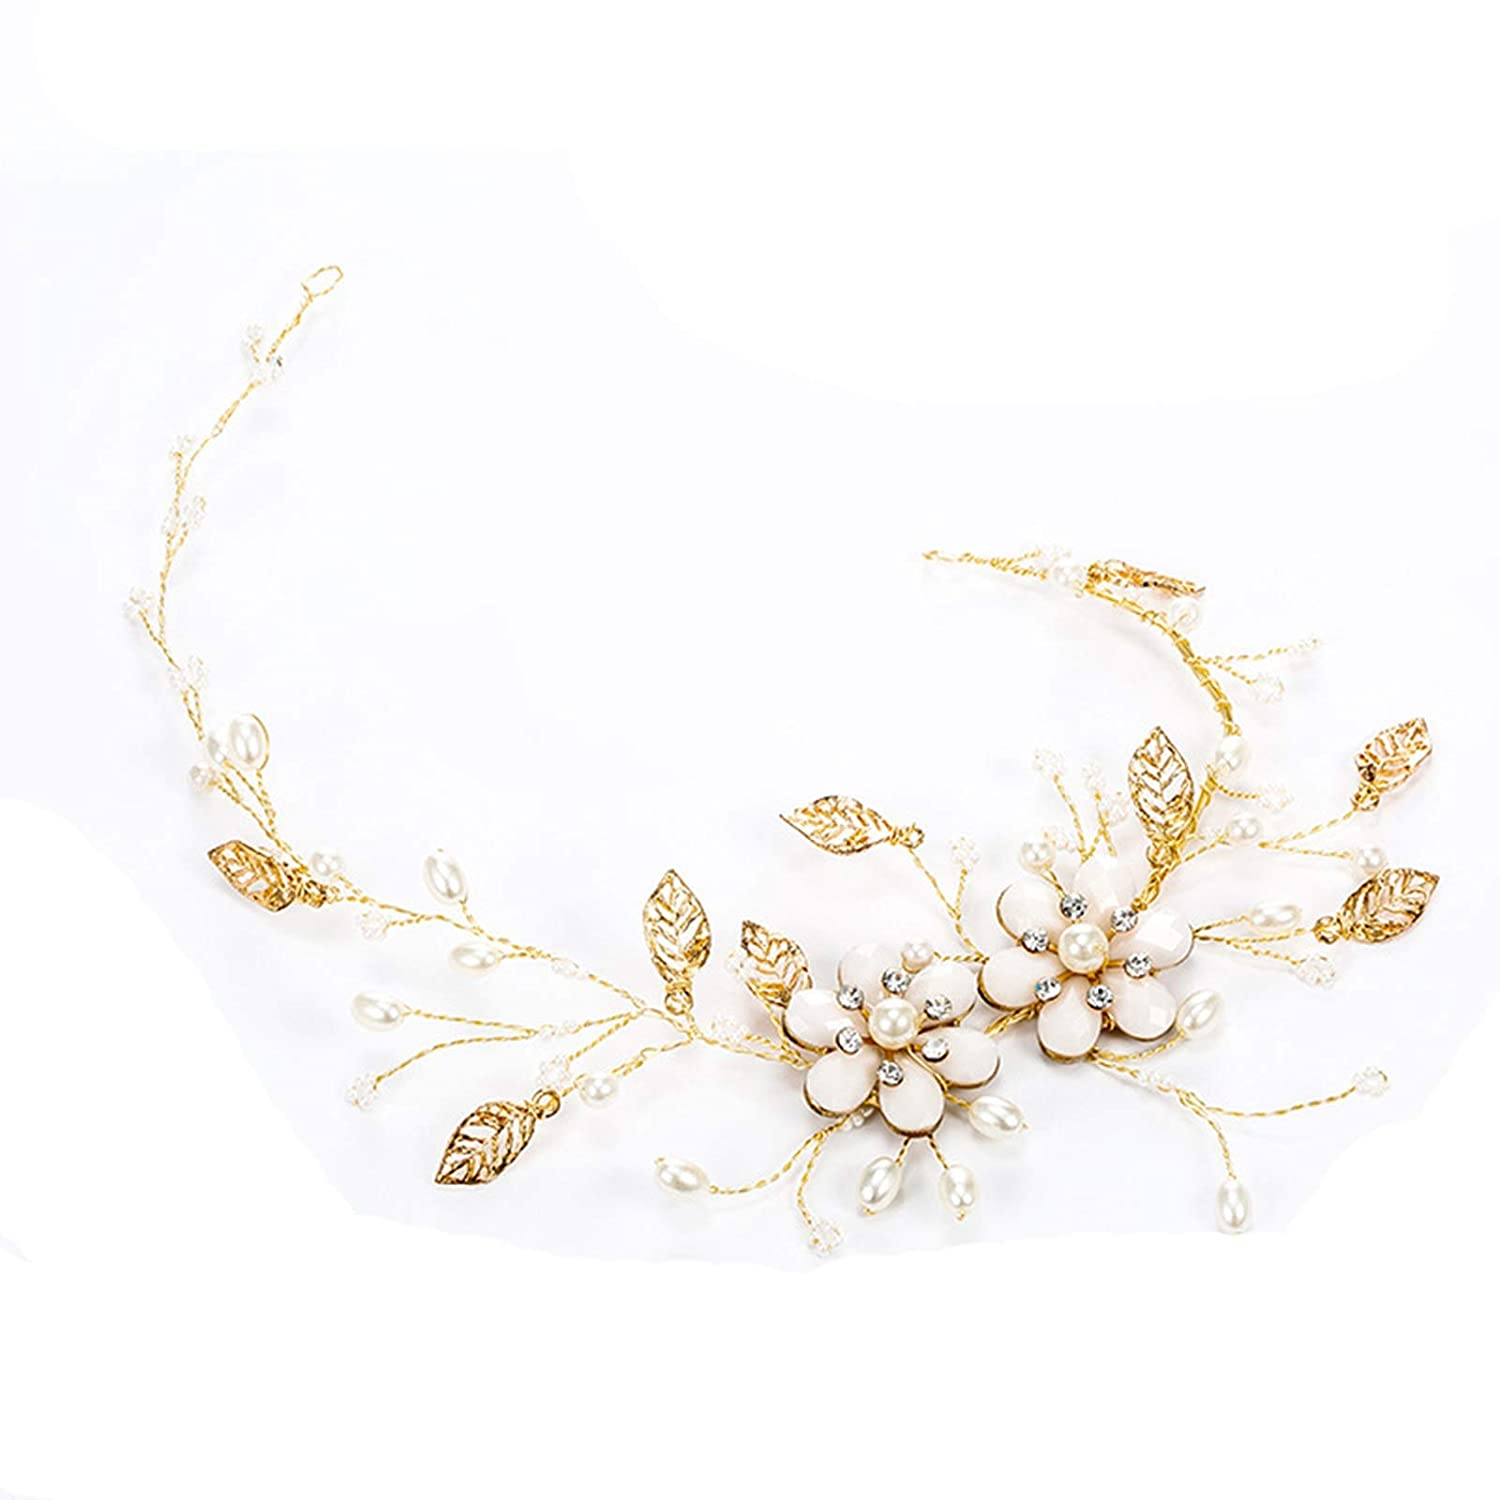 AMDXD Bridal Hair Accessories for Wedding Flower with Leaf Pearl Headband for Women Vintage Gold Plated Headbands Gold